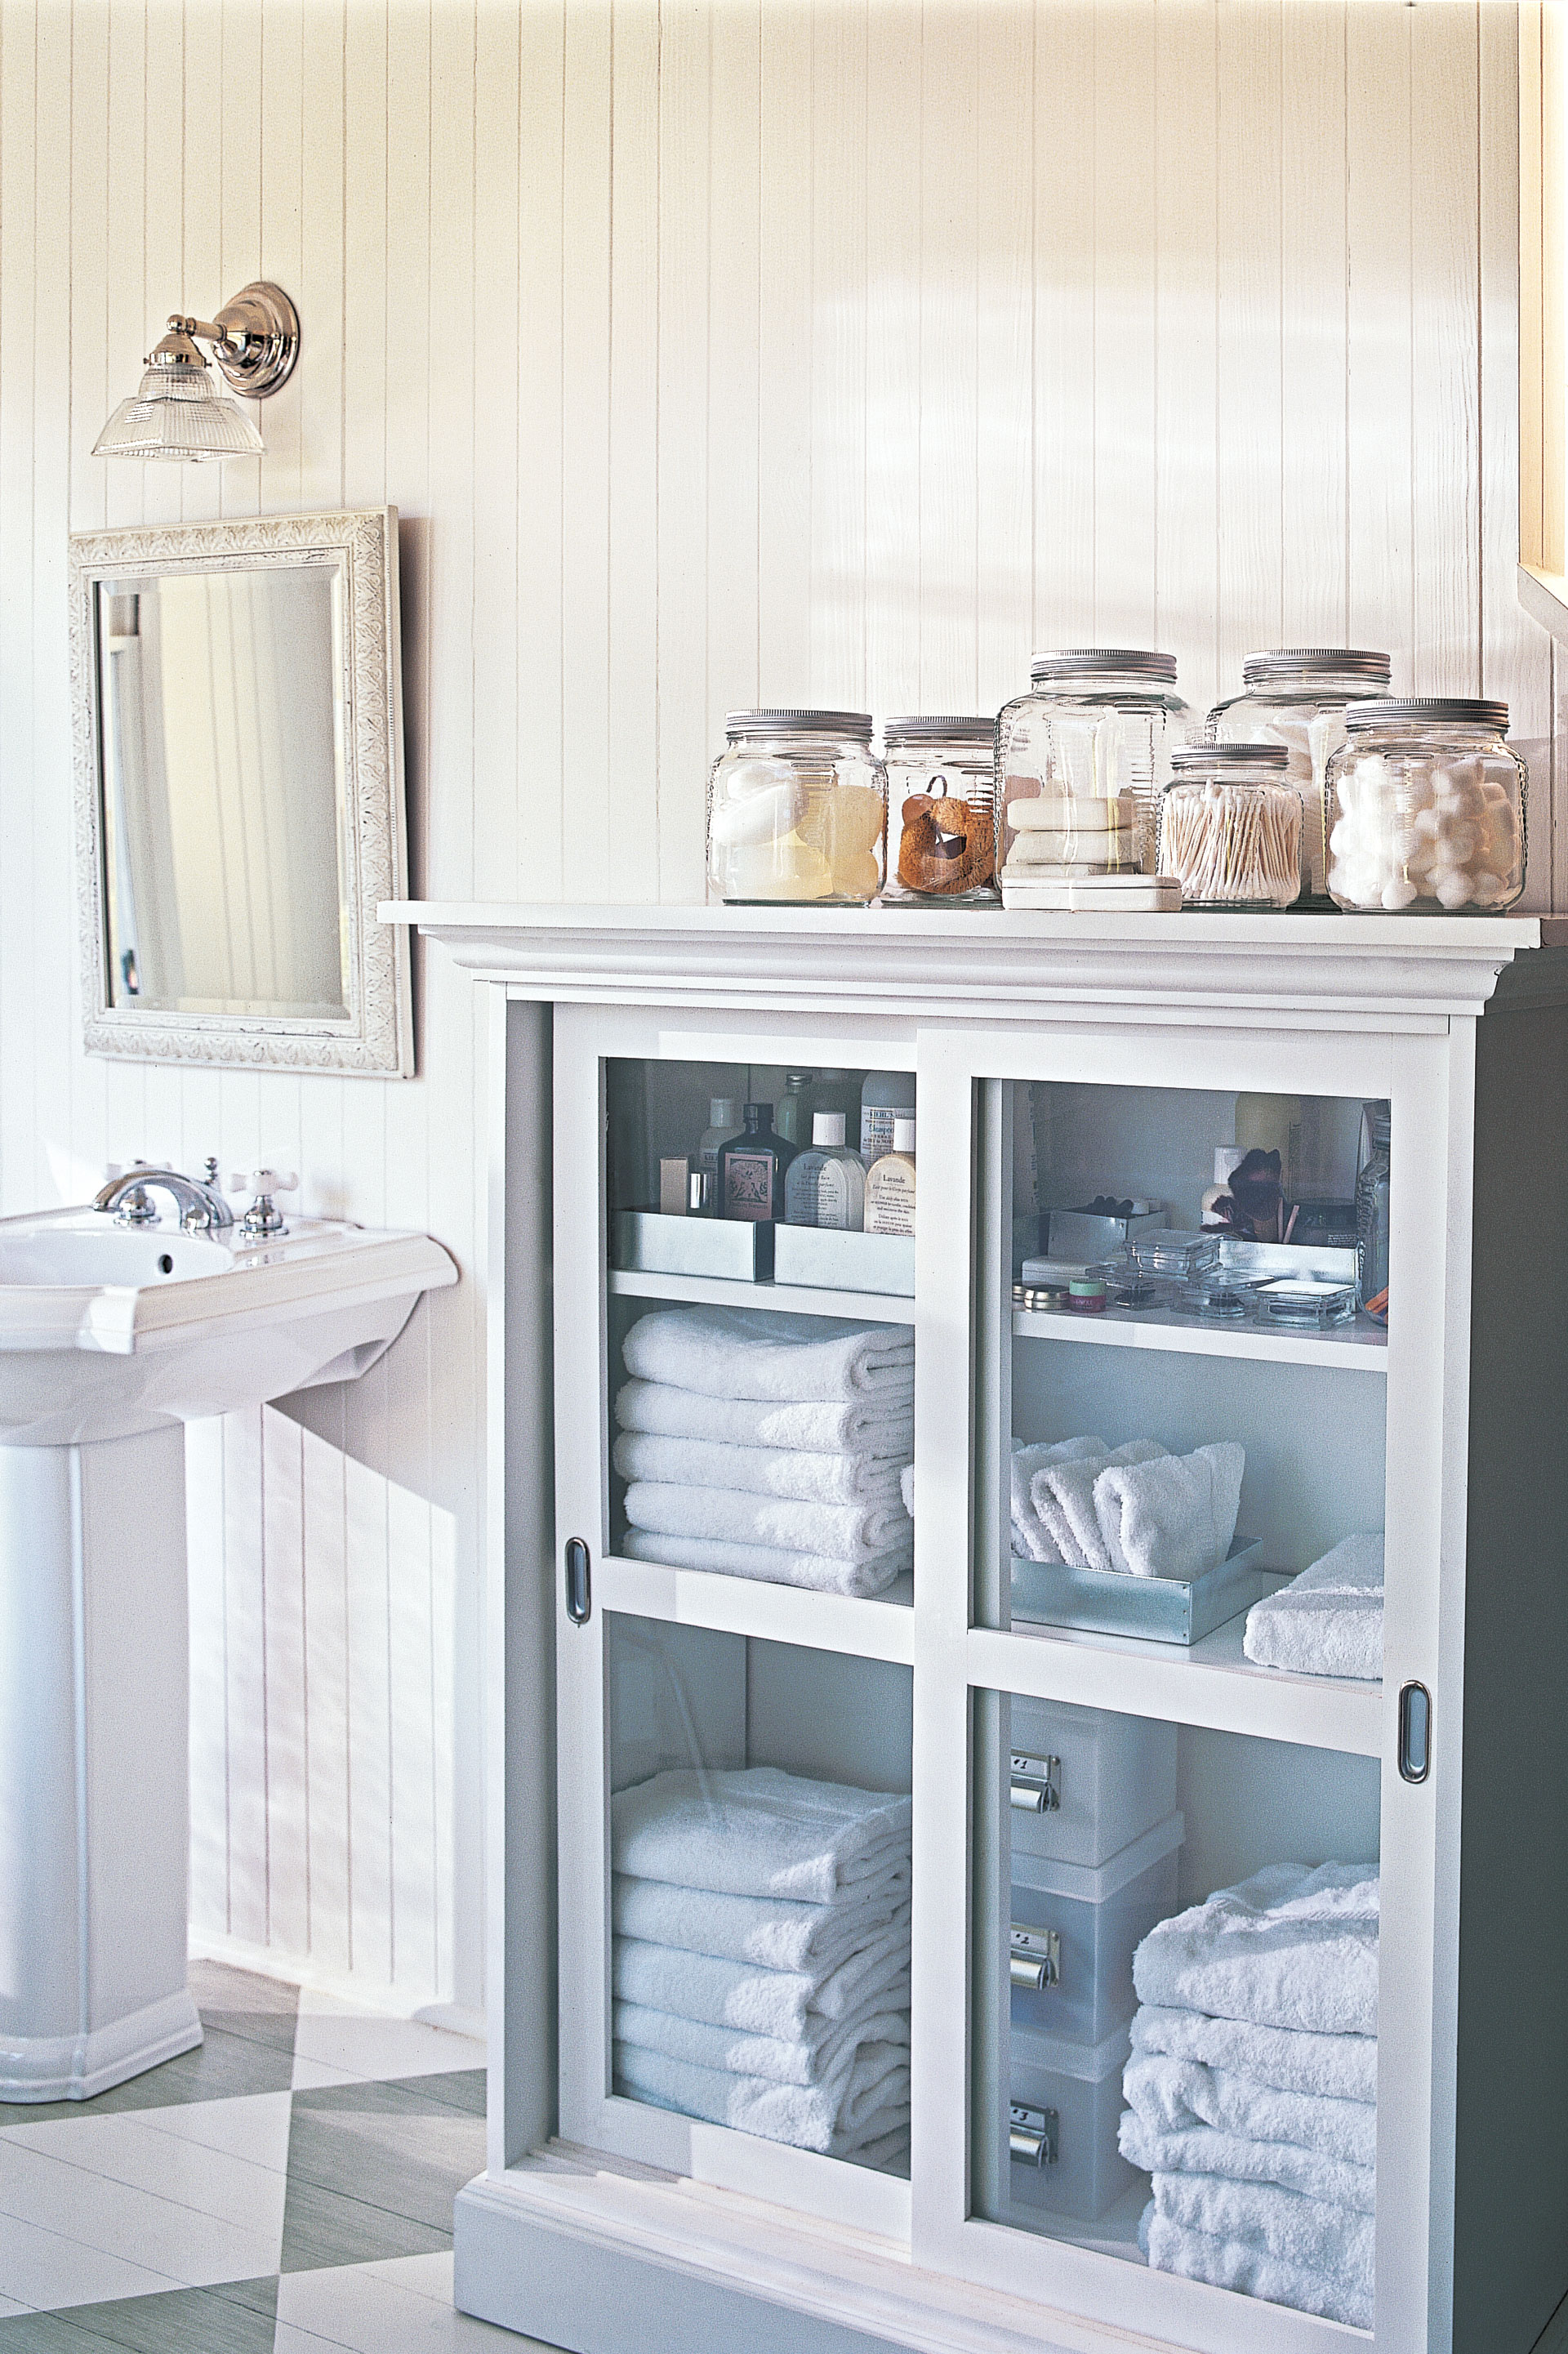 17 Bathroom Organization Ideas - Best Bathroom Organizers to Try